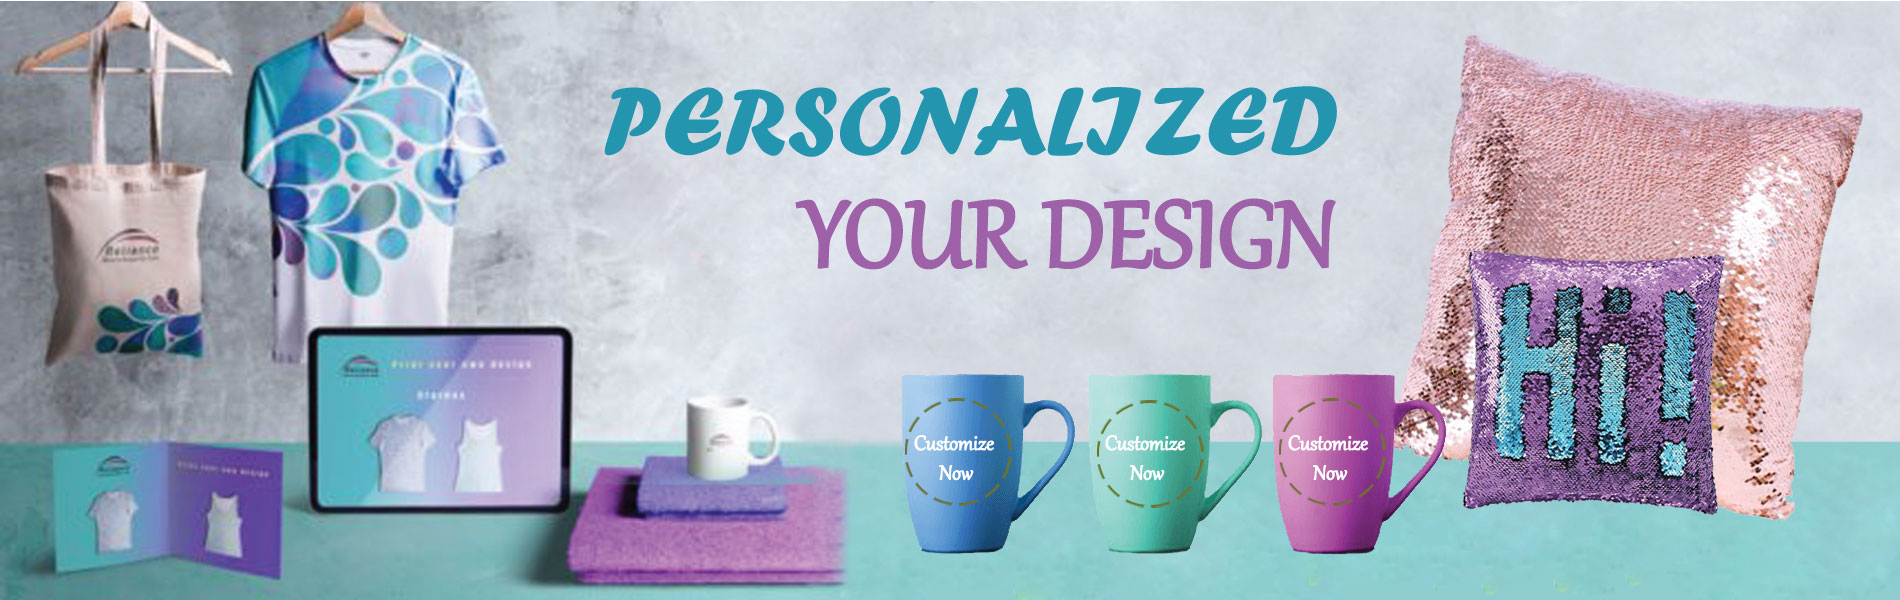 Personnalized-dsign